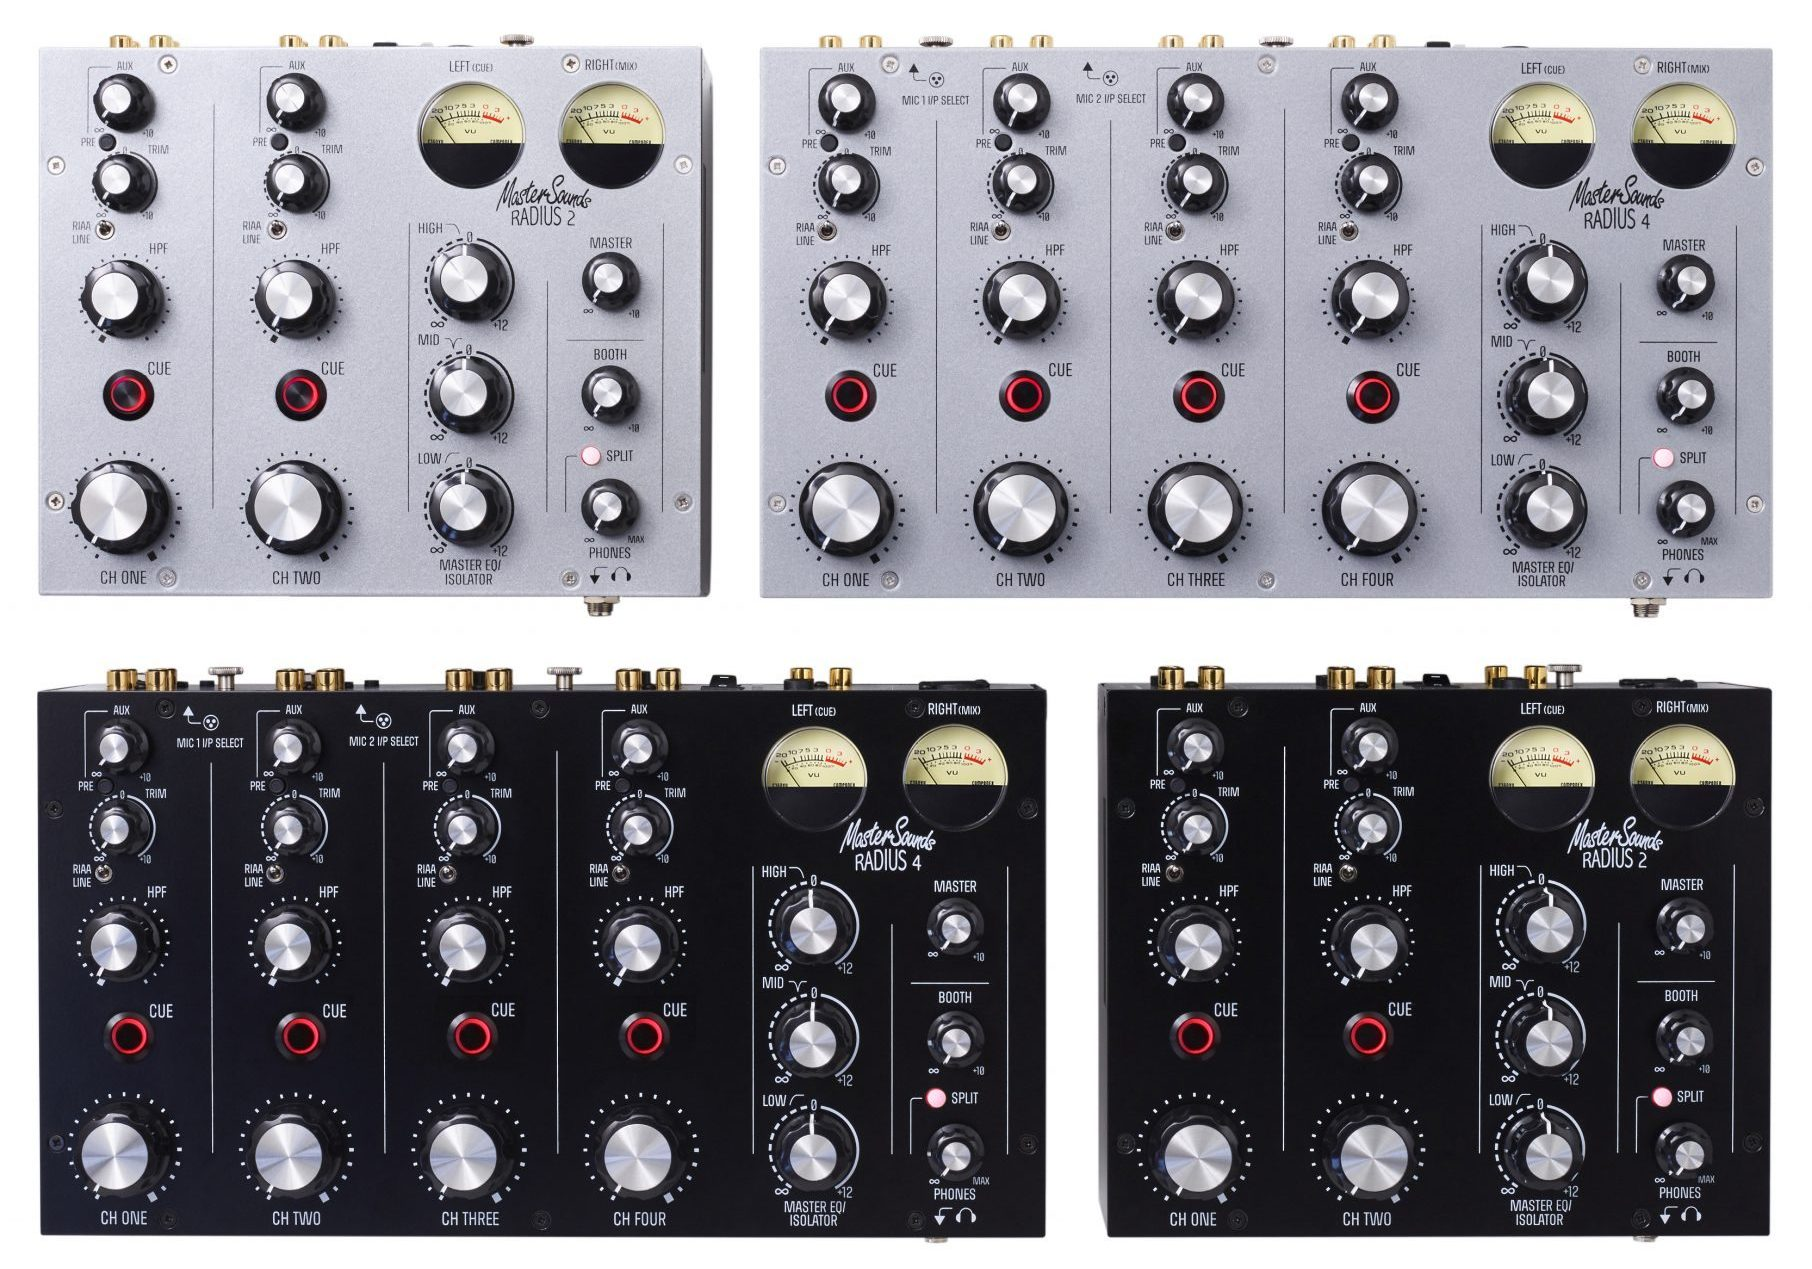 The Radius 4 — more rotary mixer magic from Mastersounds 3